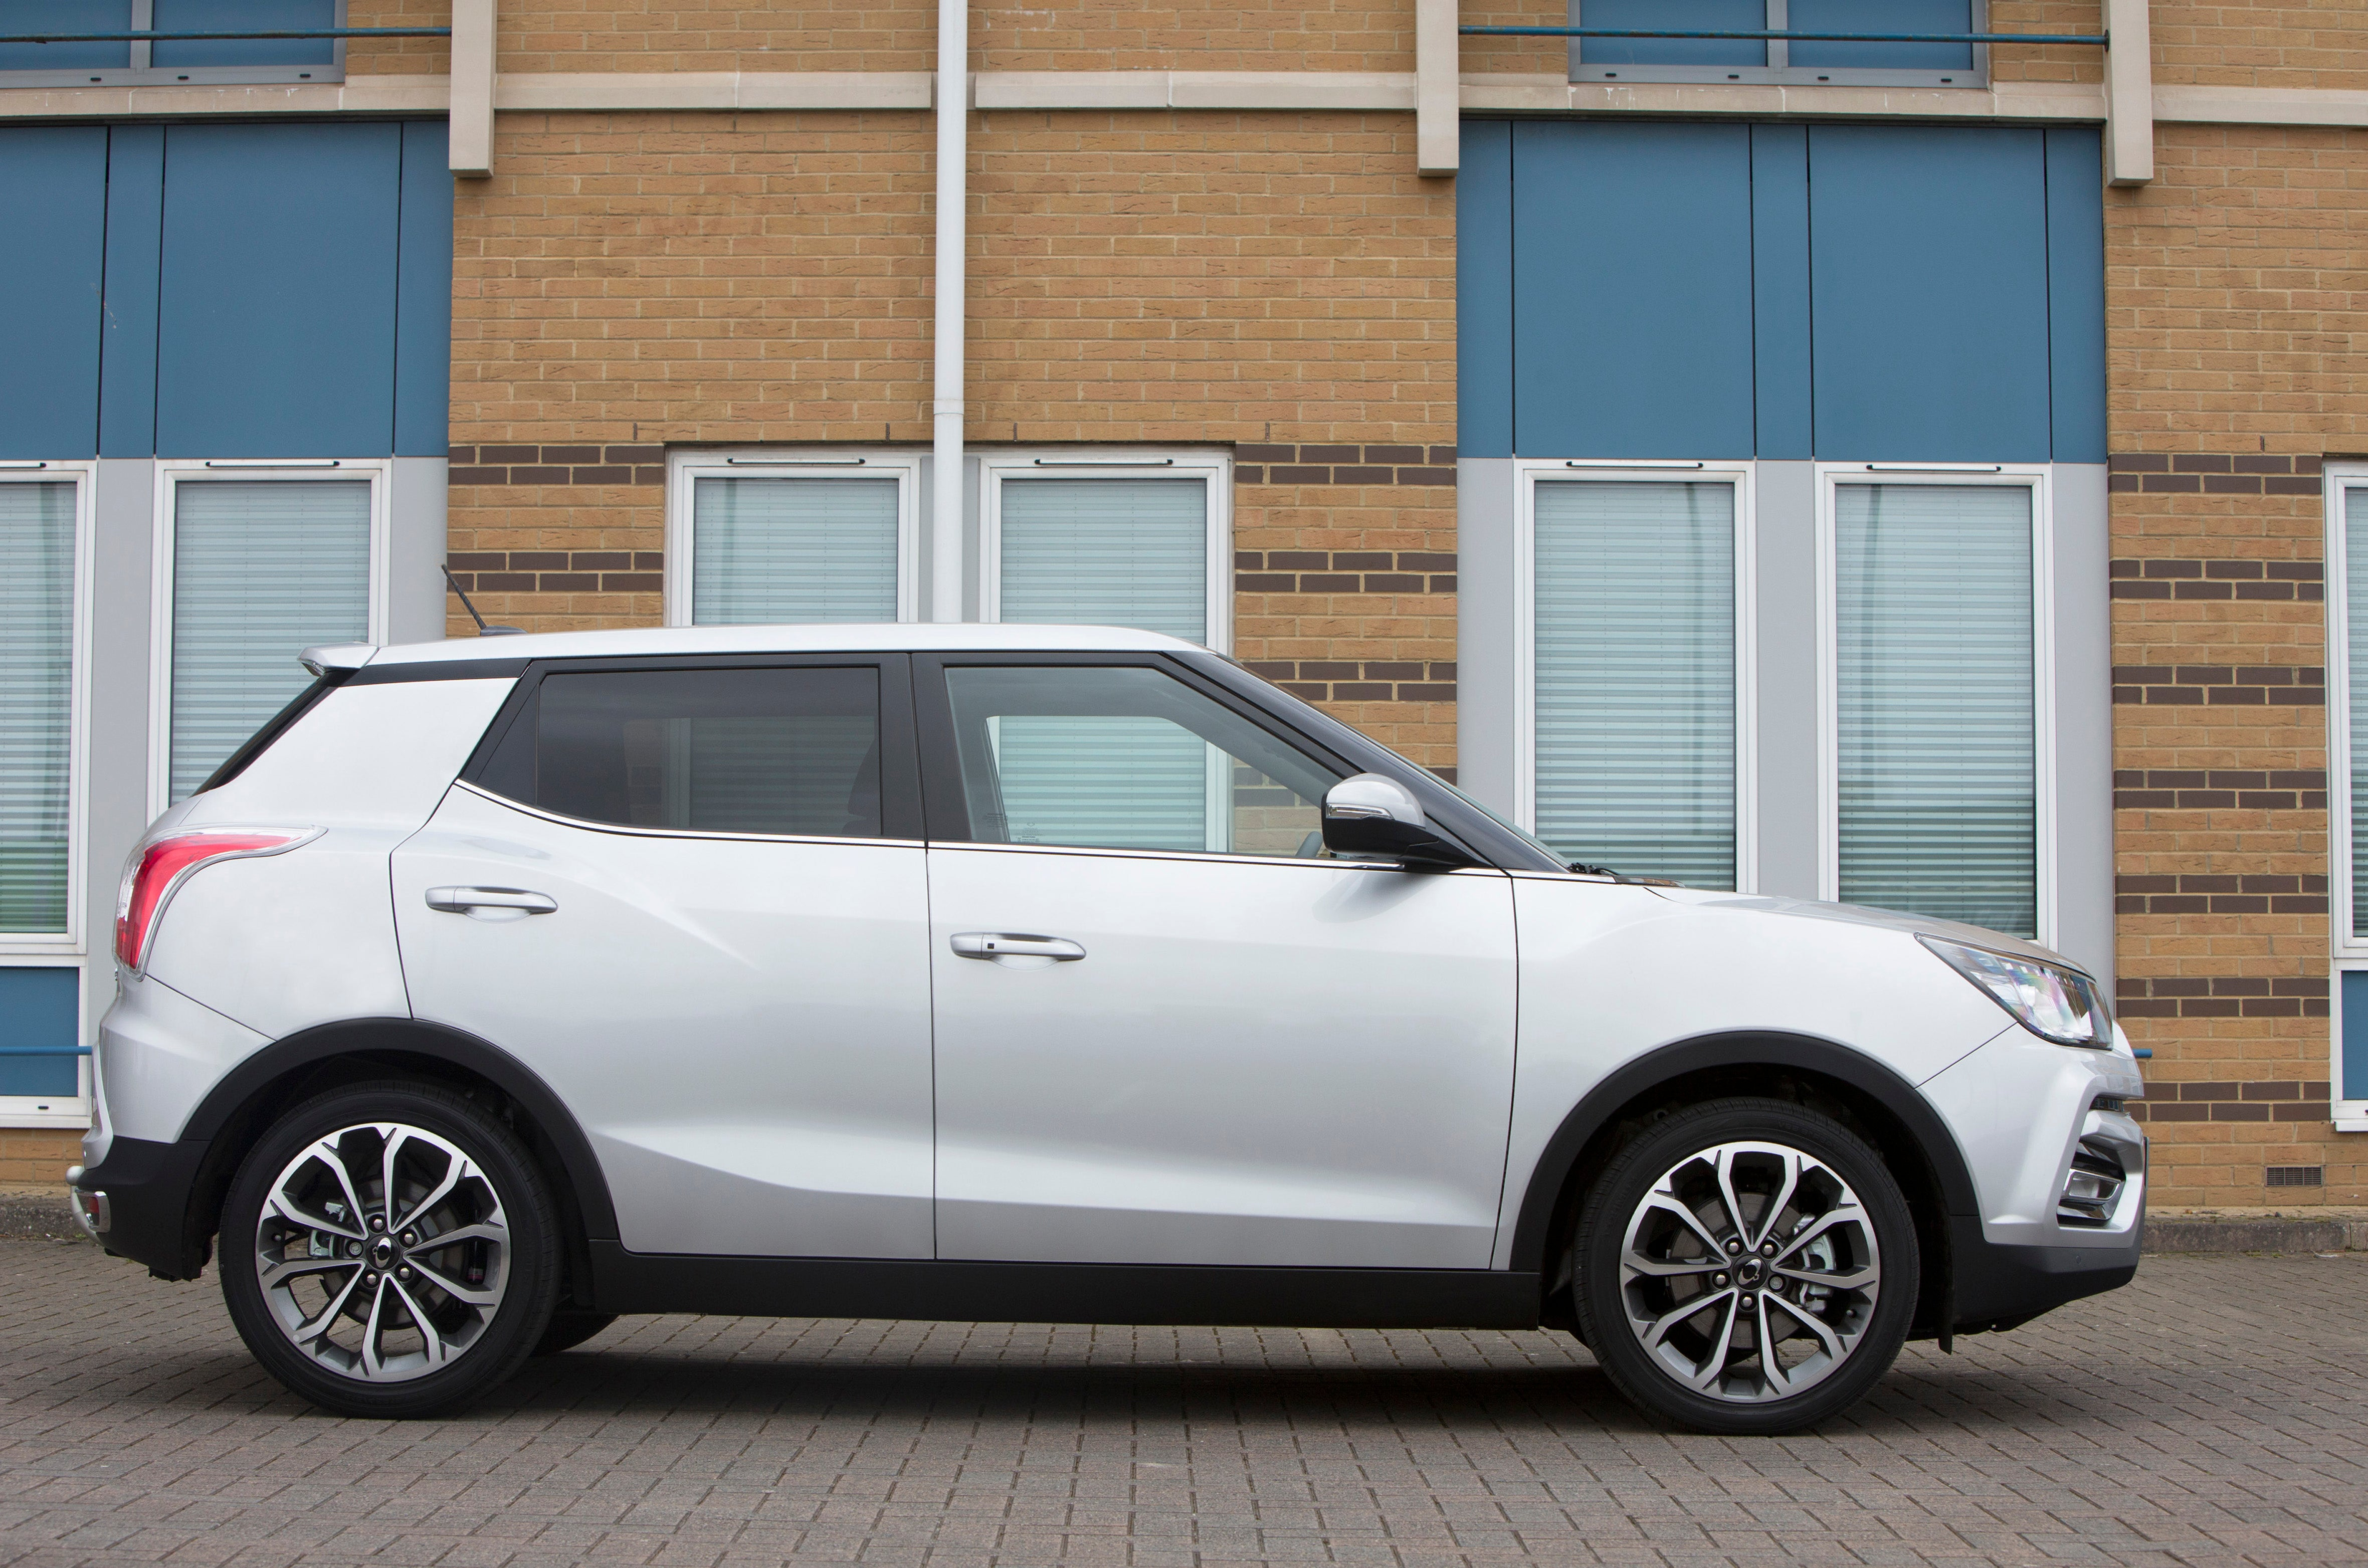 SsangYong Tivoli Right Side View